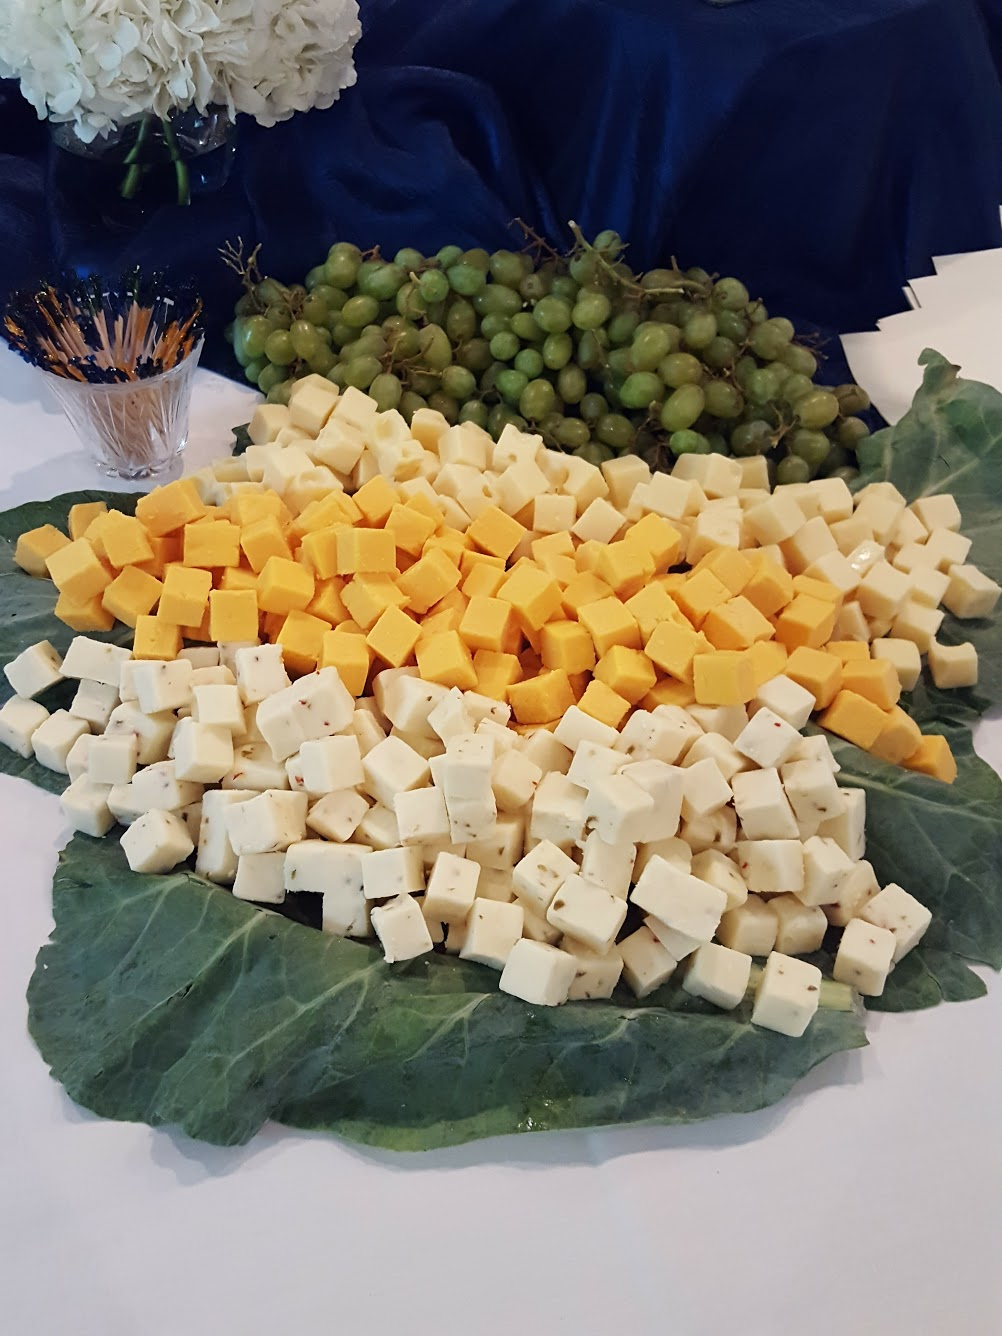 Variety of cheese and grapes